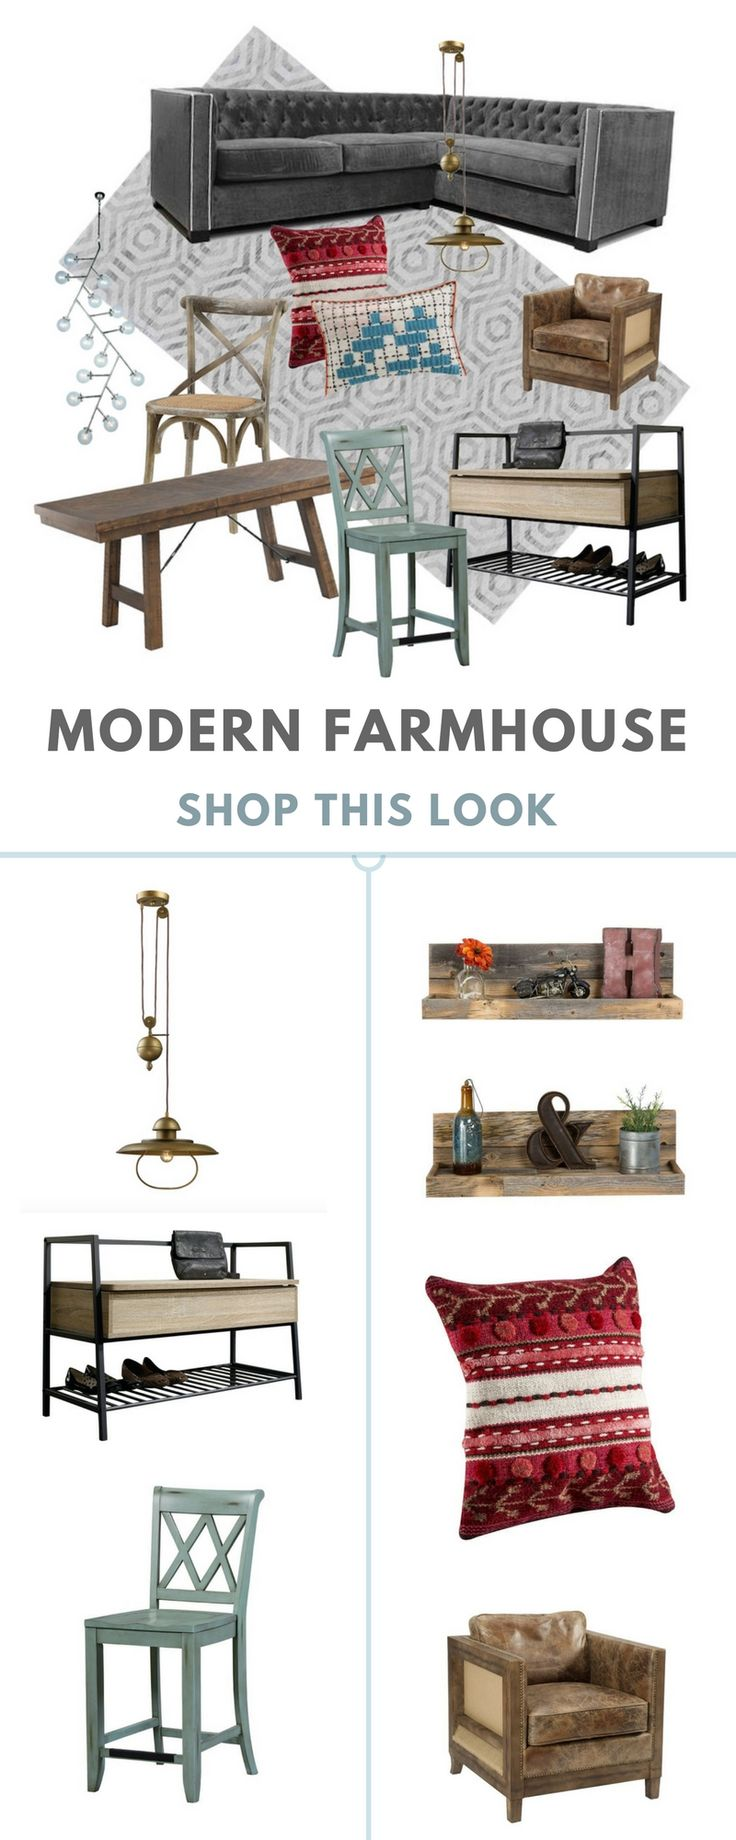 What is the Modern Farmhouse Look?Marked by its tactful combination of rustic pieces and sleek accents, the modern farmhouse look is an incredibly warm, welcoming aesthetic. It is an indicator of tailored, designer taste, but it is also lived-in. It's not stuffy or off-putting, as overly-embellished or overly-edited rooms can sometimes be.